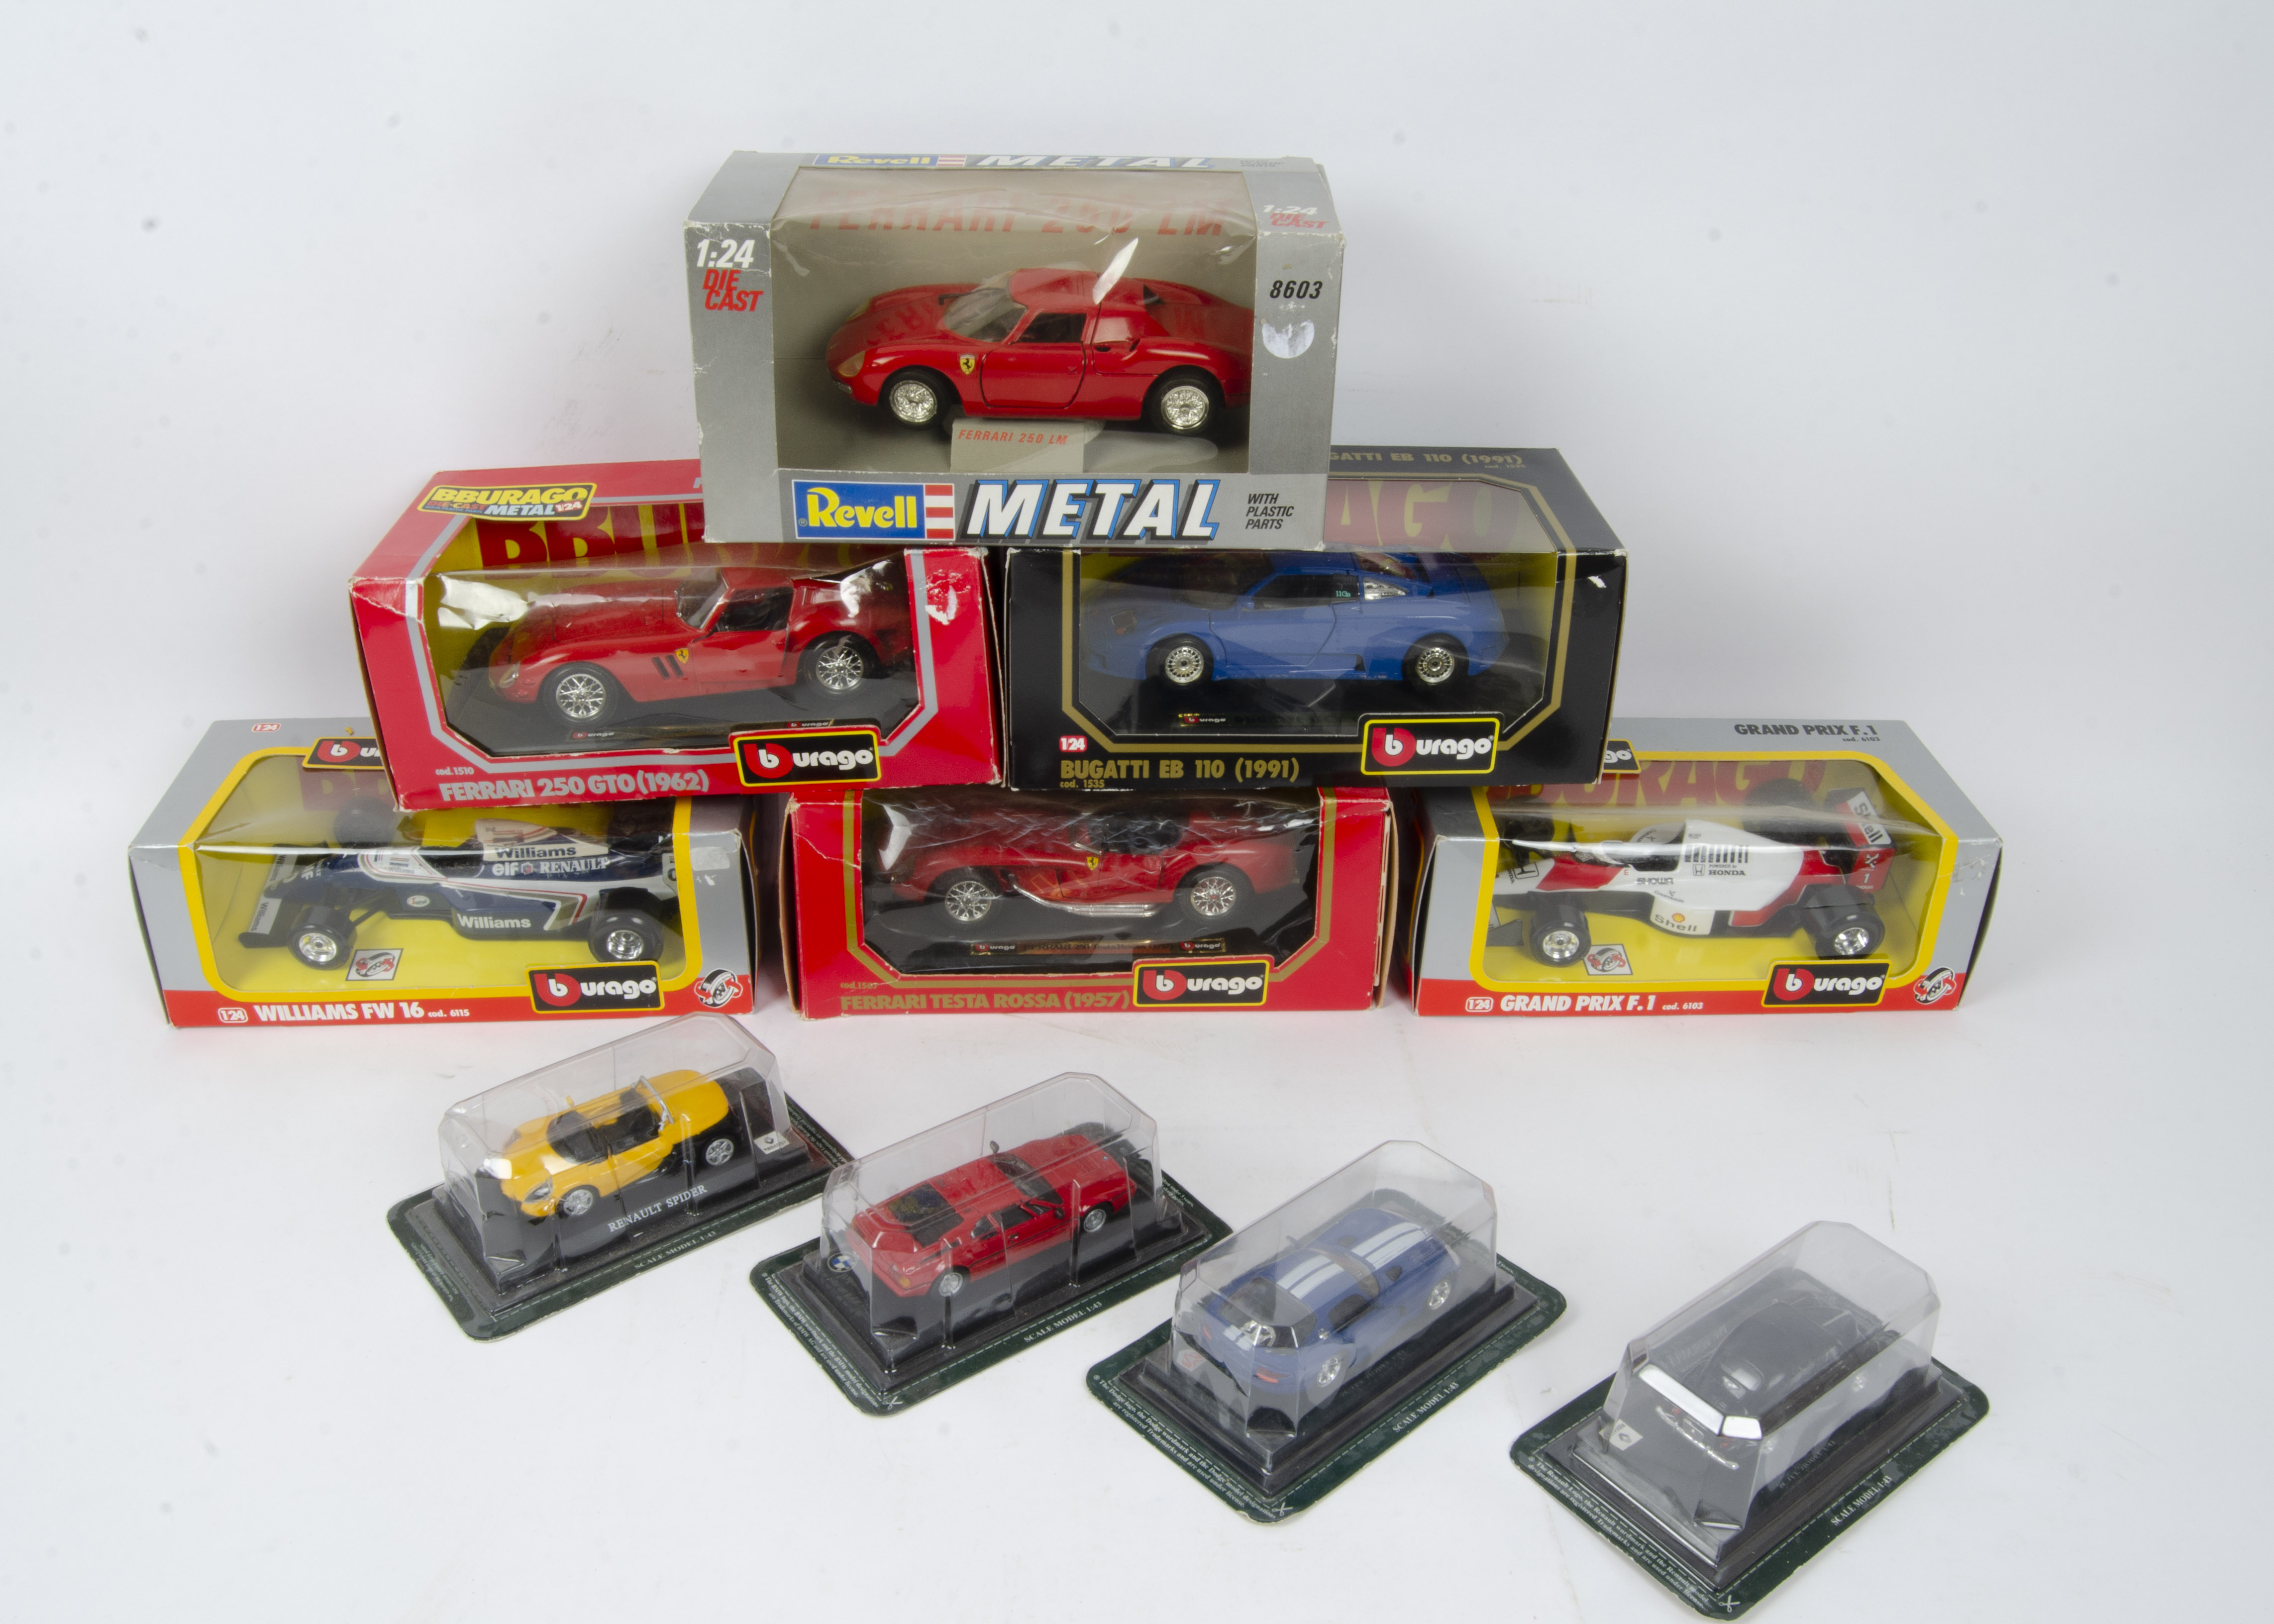 Modern Diecast 1:15 Scale and Smaller, a boxed collection of private and competition vehicles - Image 2 of 2